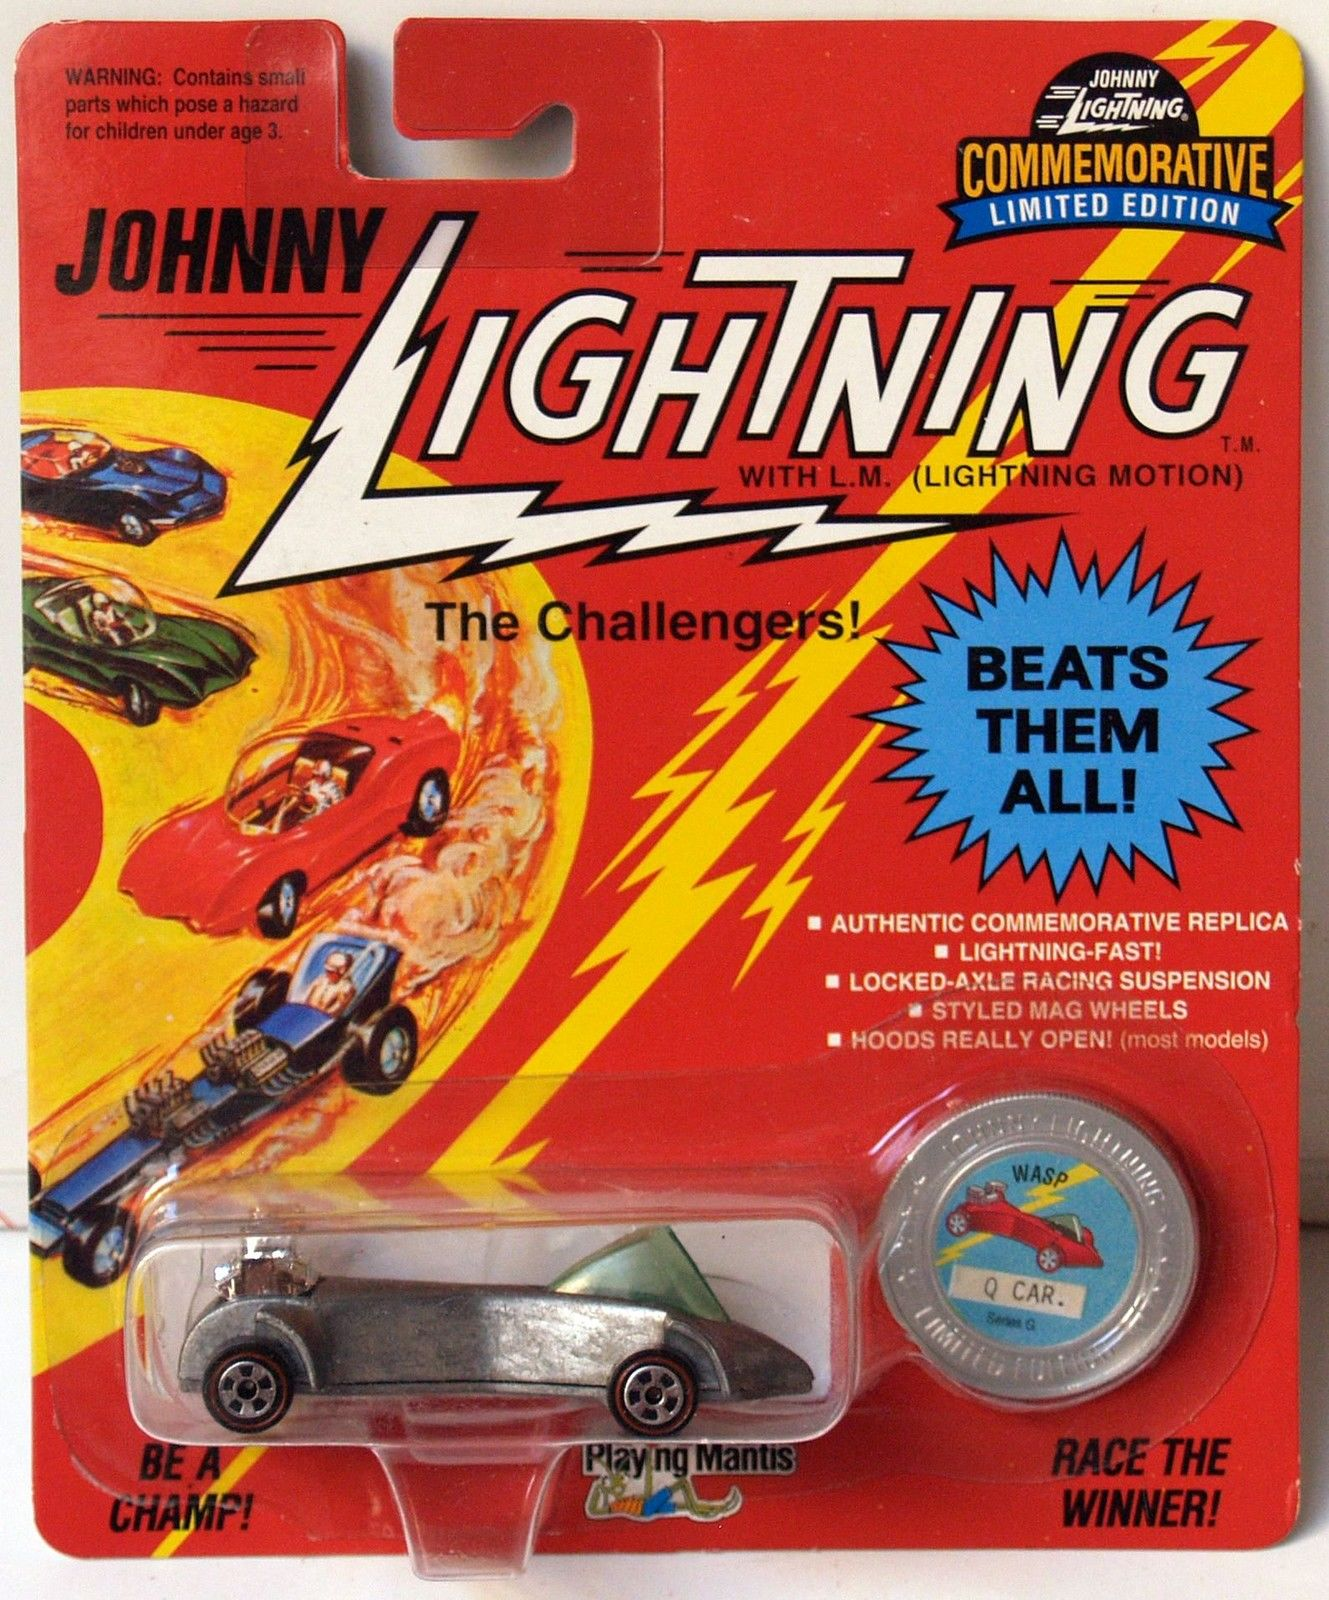 JOHNNY LIGHTNING COMMEMORATIVE ZAMAC - SERIES G